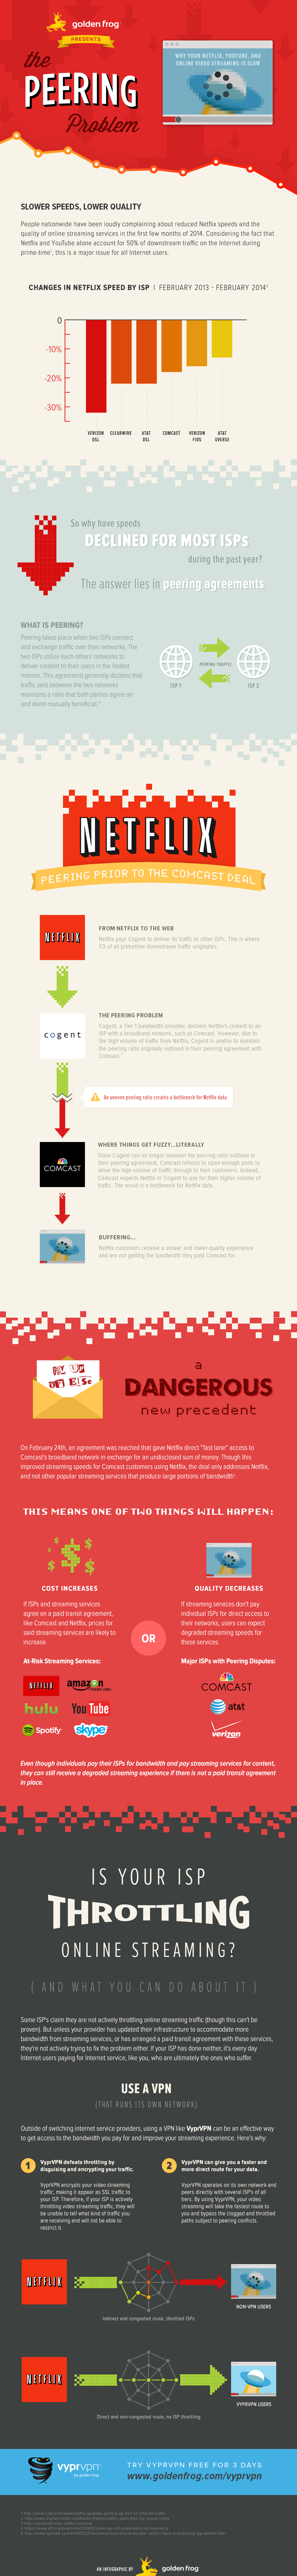 video streaming peering problem infographic